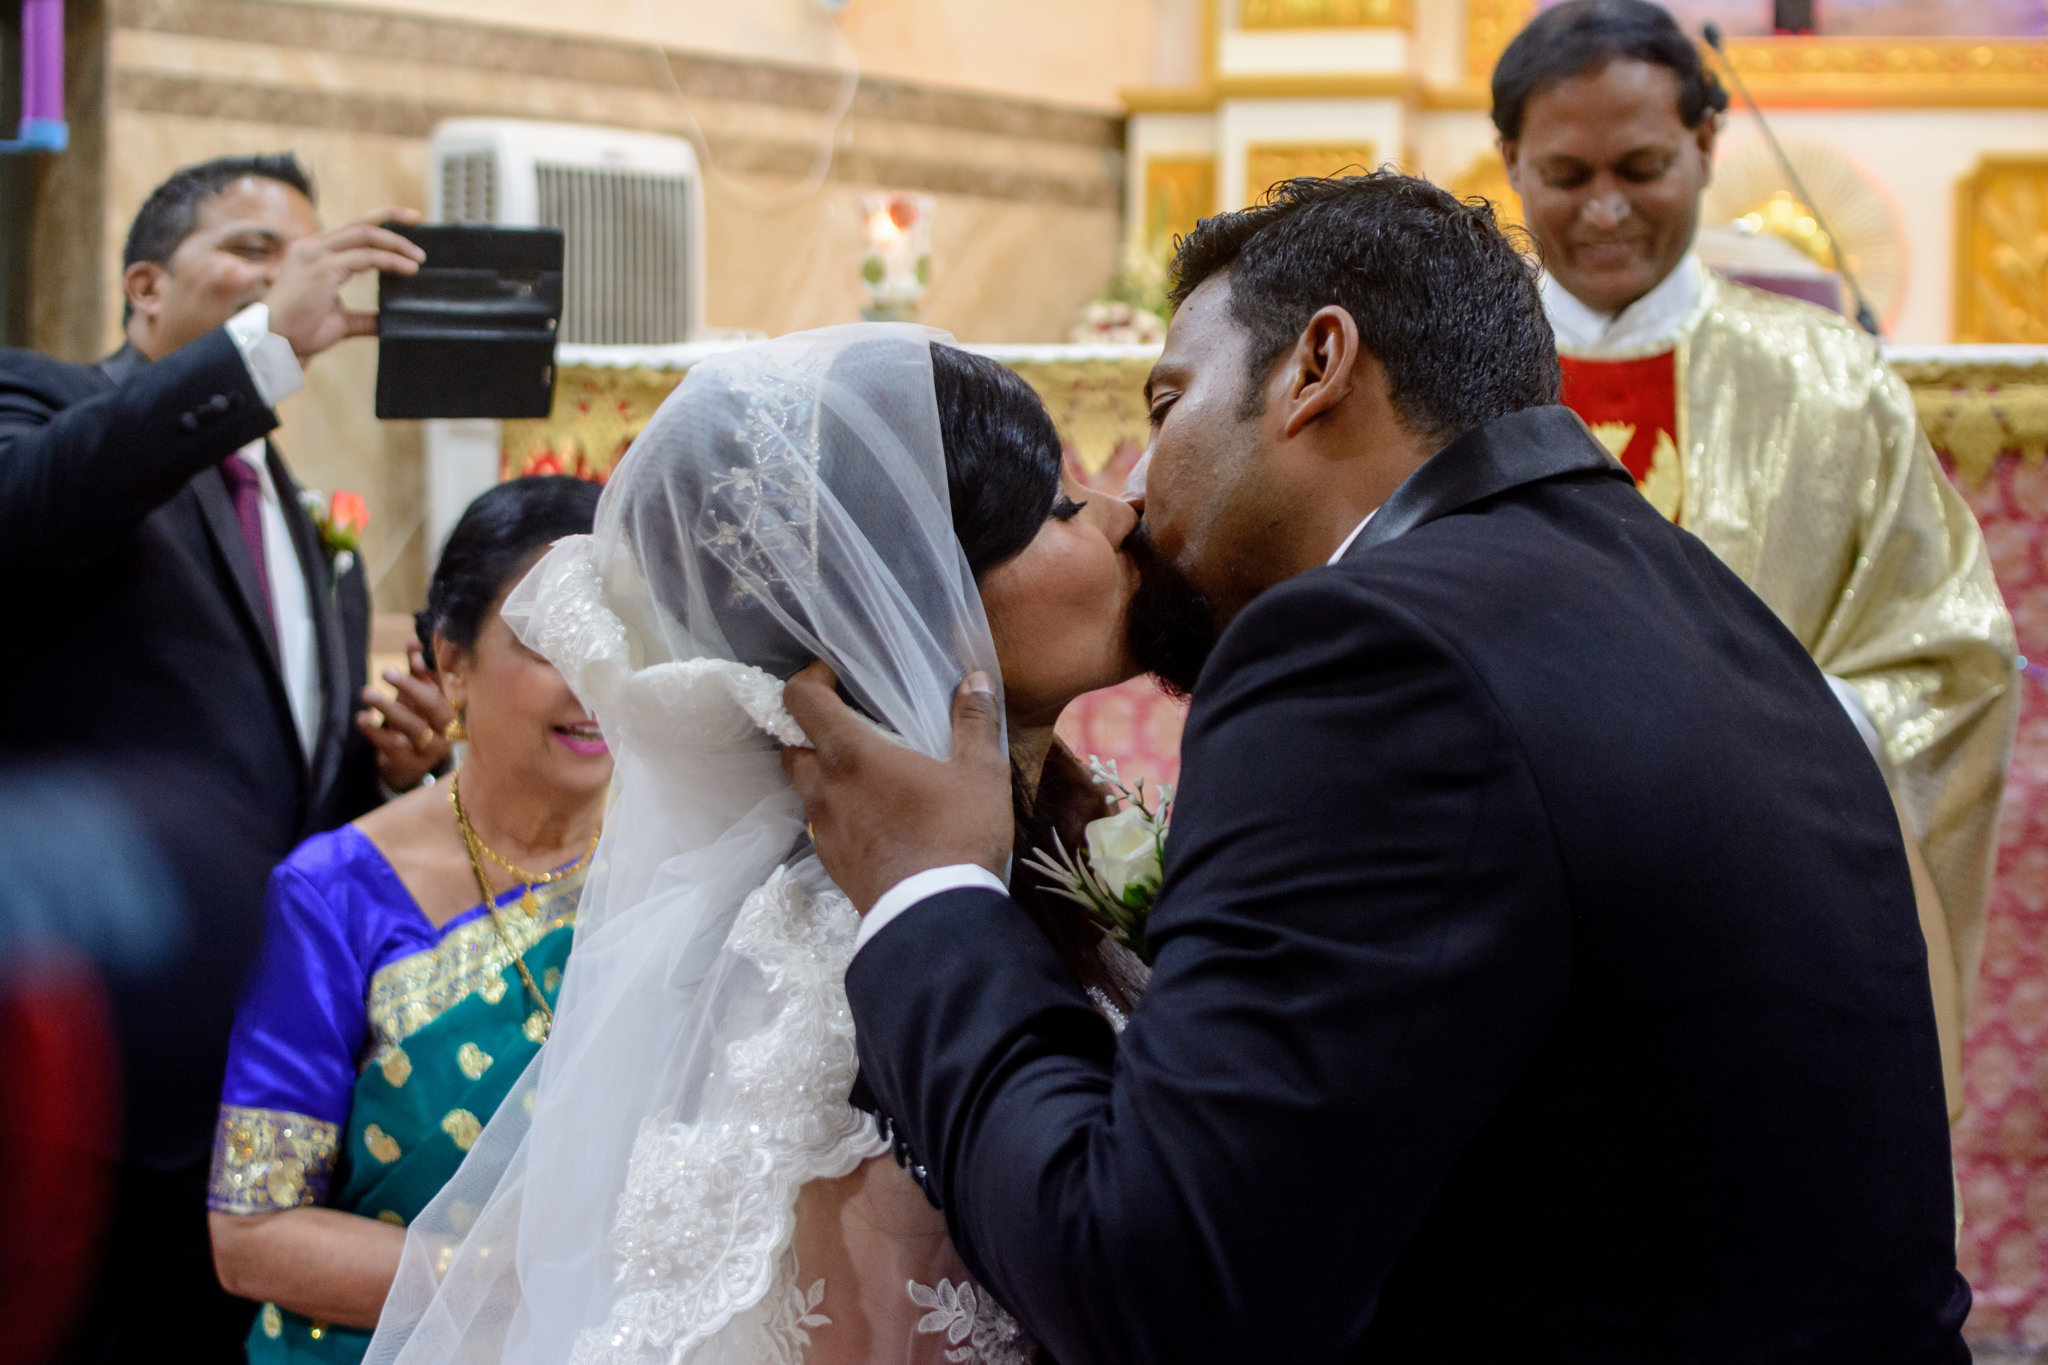 Lynn-Rajeev-Wedding-HR-96.JPG